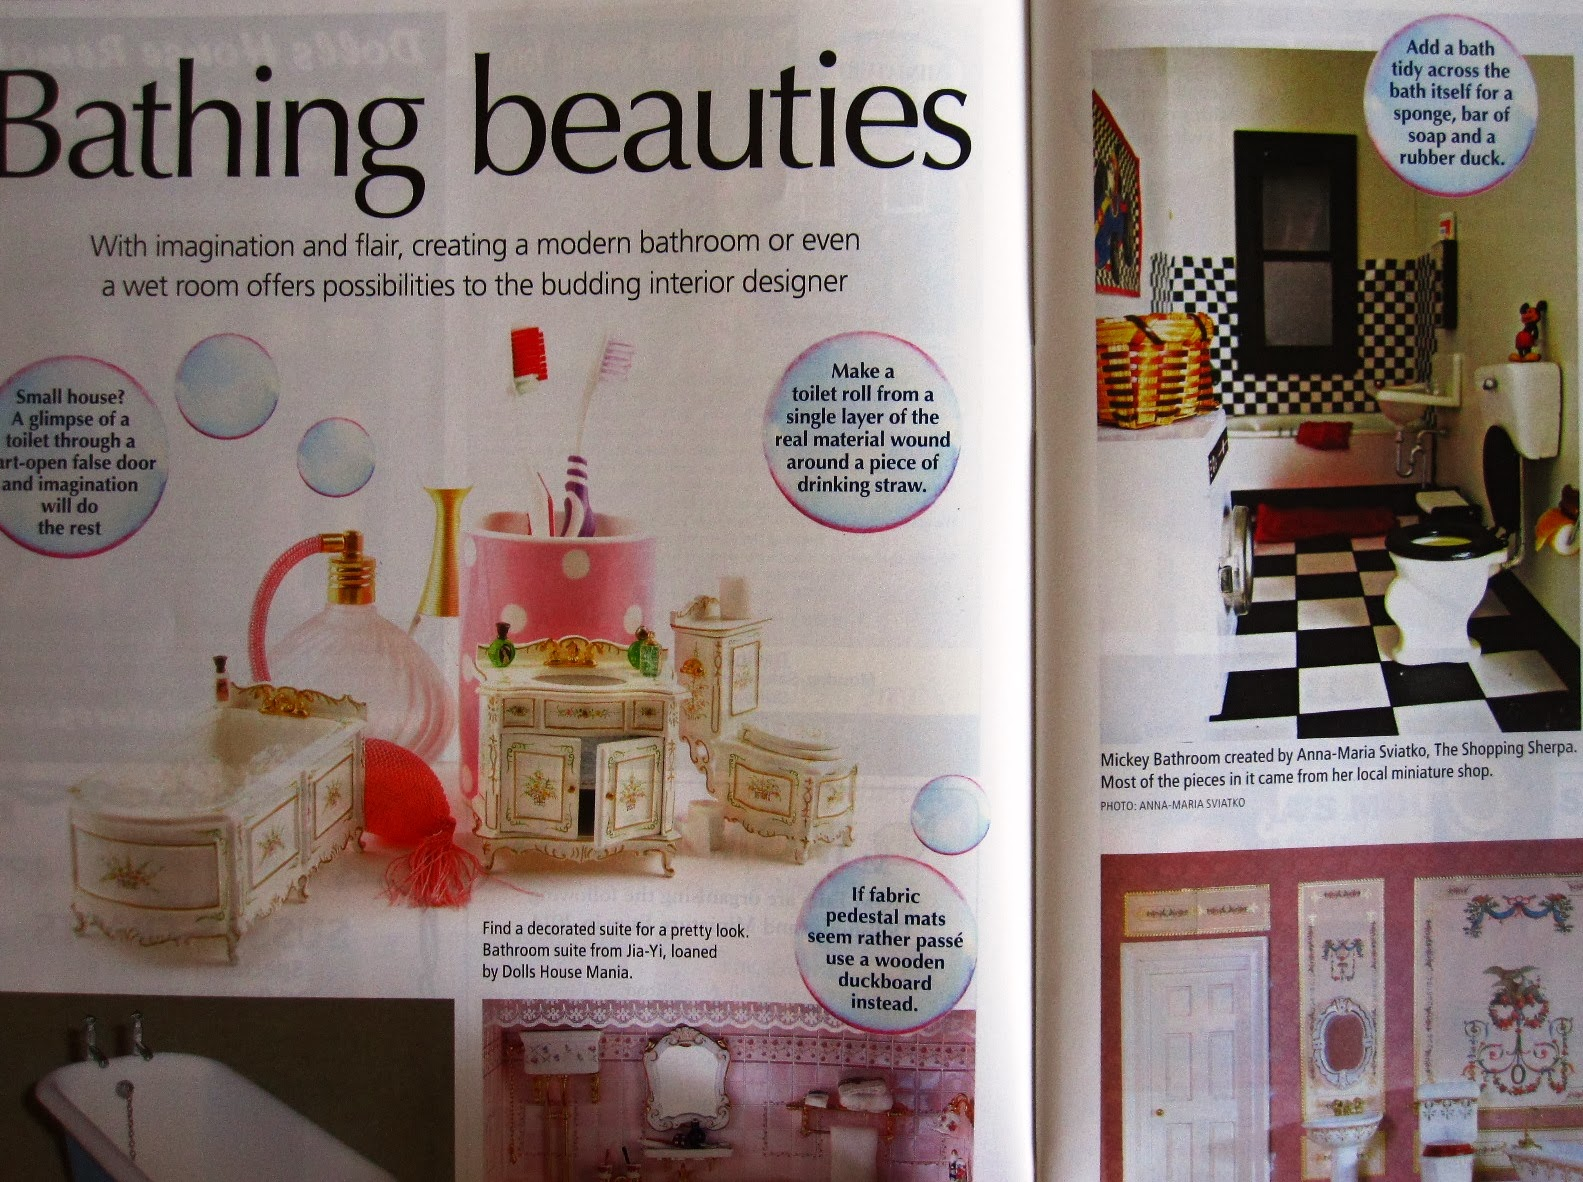 Bathing beauties article in The Dolls' House Magazine's January issue, including my Mickey bathroom